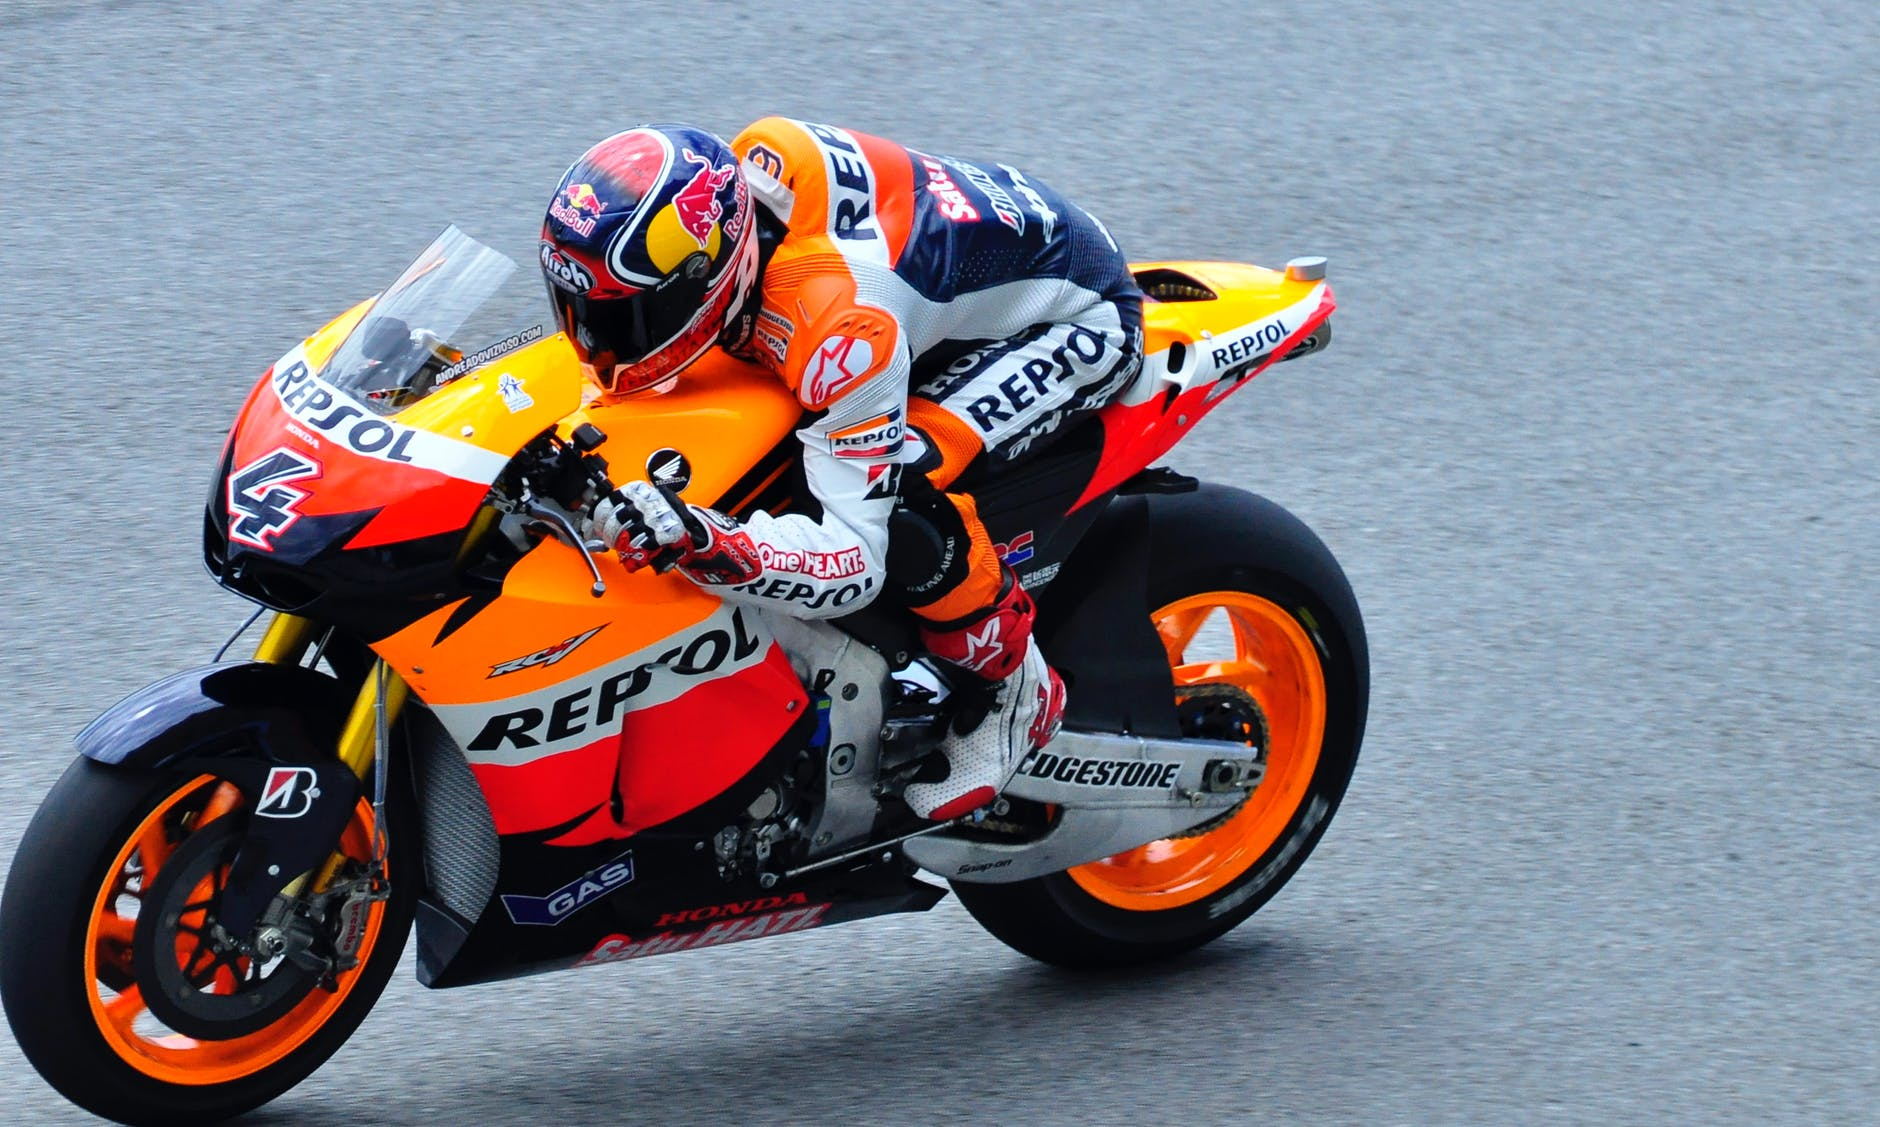 repsol motogp - The 7 Wagering Alternatives When Betting on MotoGP